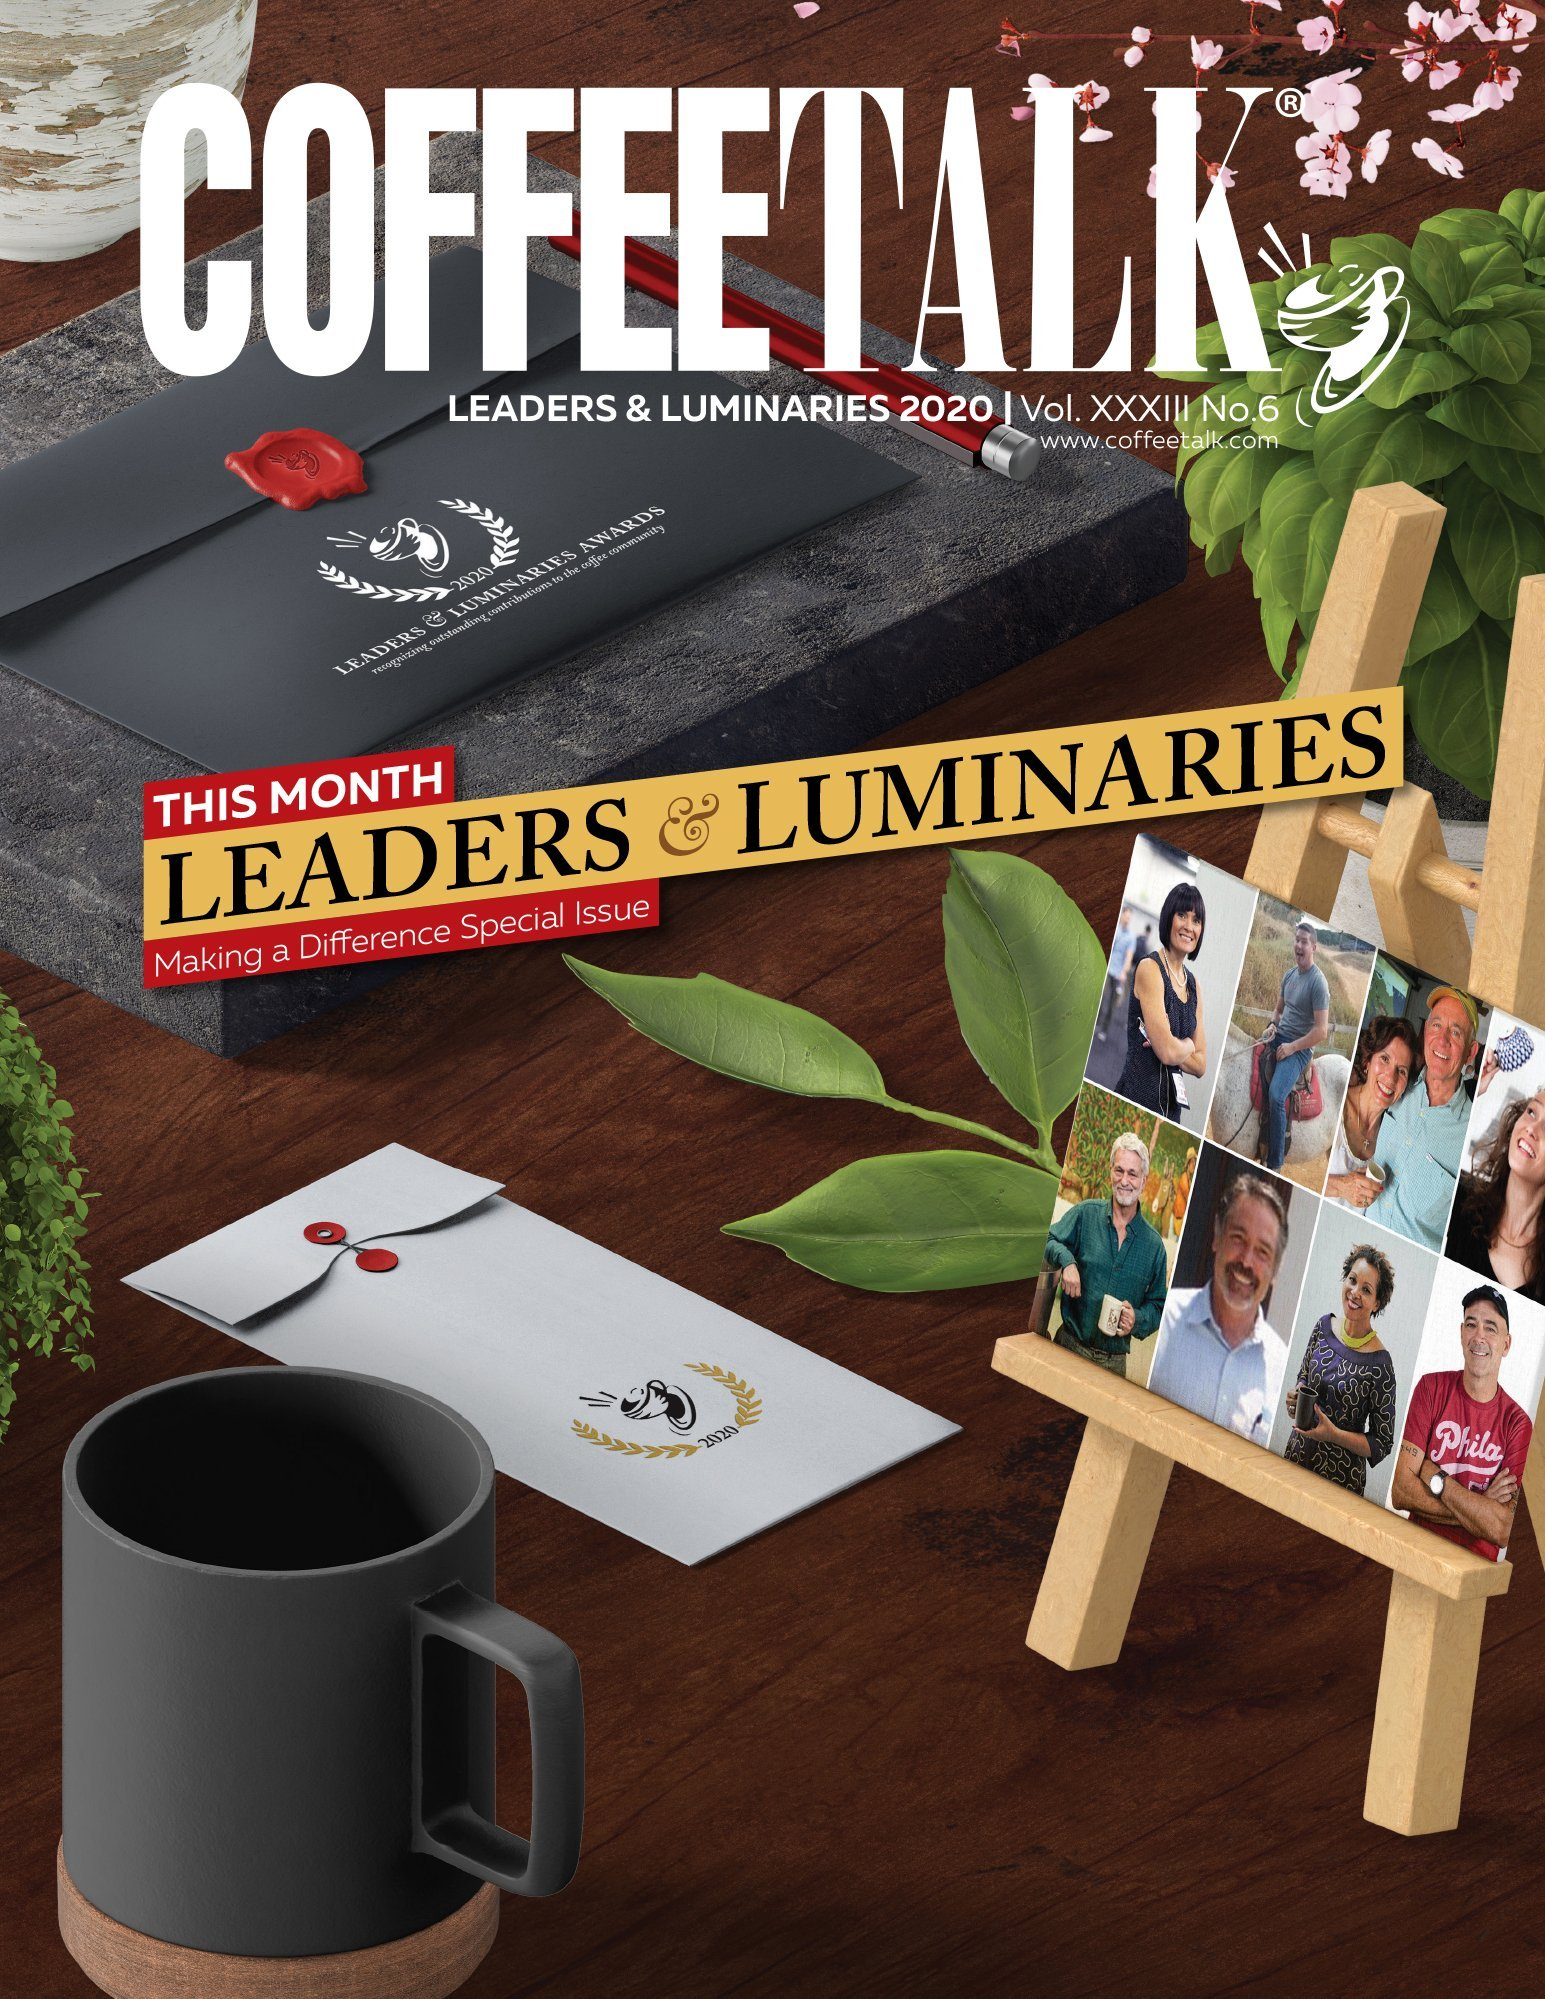 Leaders & Luminaries 2020 Issue